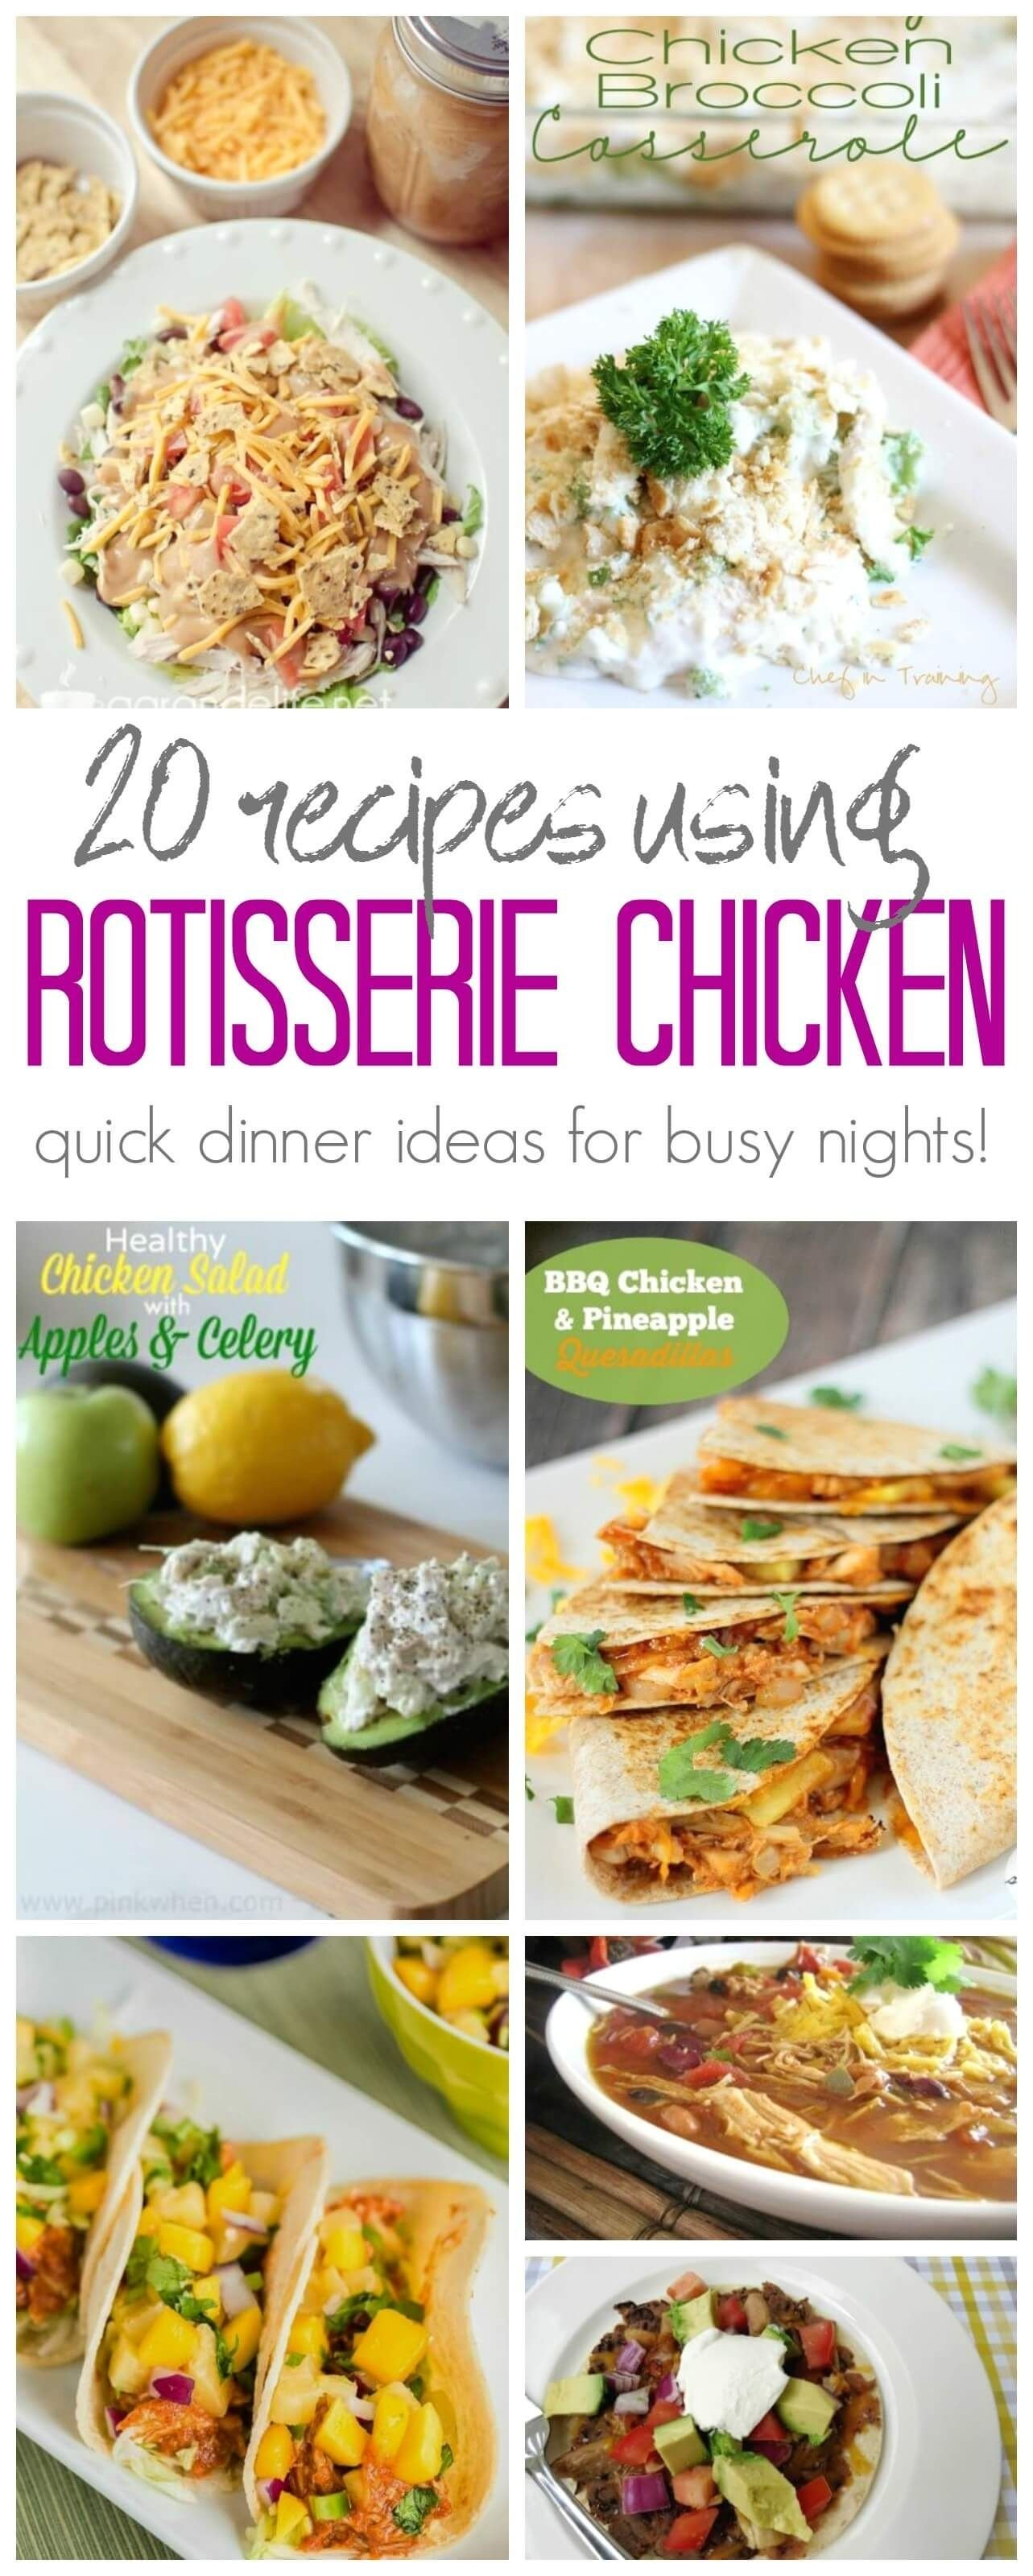 10 Stylish Ideas For Leftover Rotisserie Chicken leftover rotisserie chicken recipes to help you make a quick dinner